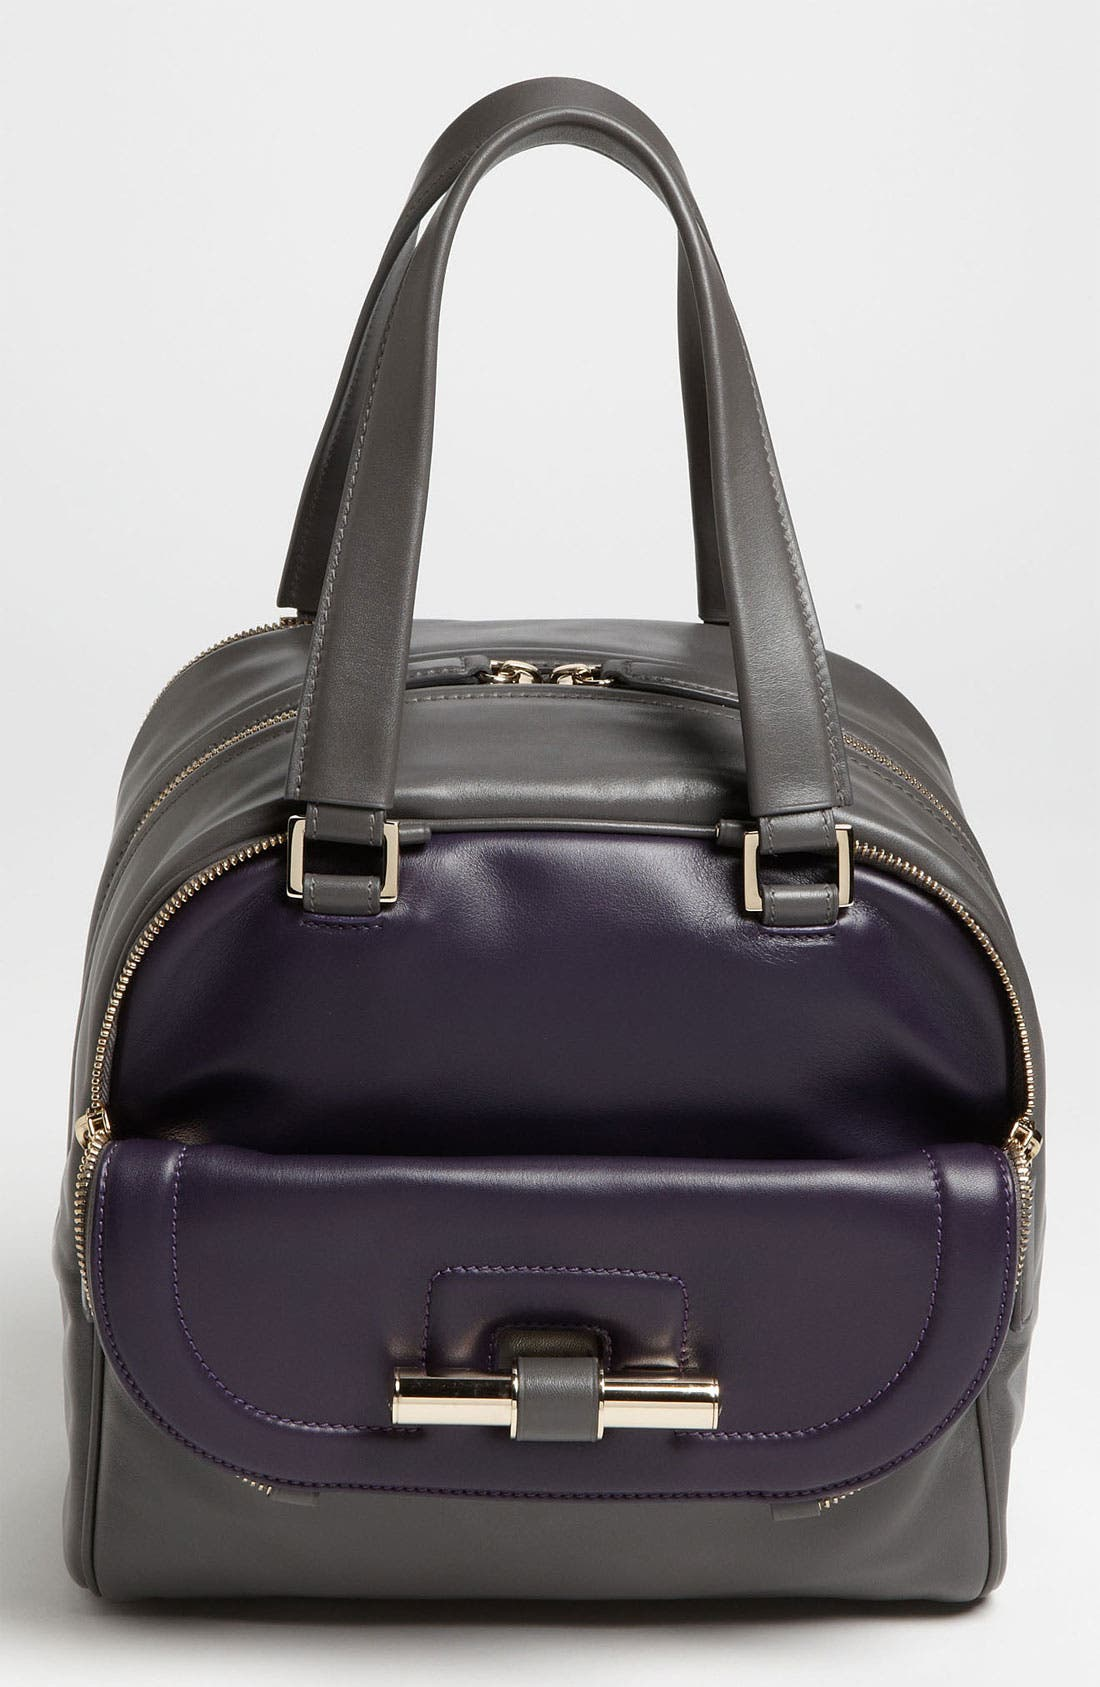 Alternate Image 1 Selected - Jimmy Choo 'Justine - Small' Bicolor Leather Satchel